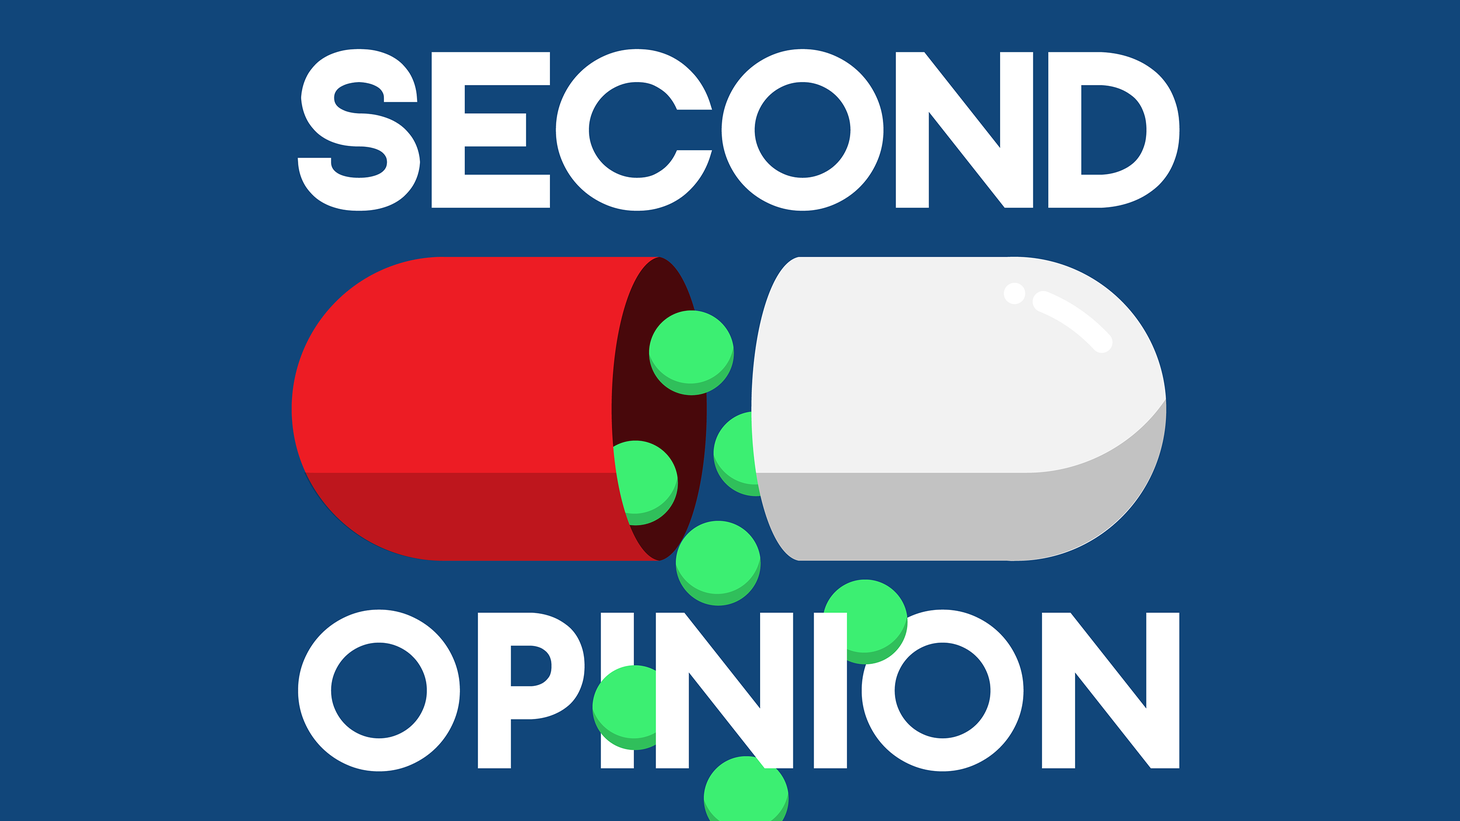 The nations is divided – are supervised injection facilities illegal and only serve to promote illicit drug use, or are they a step toward harm reduction as they save lives?